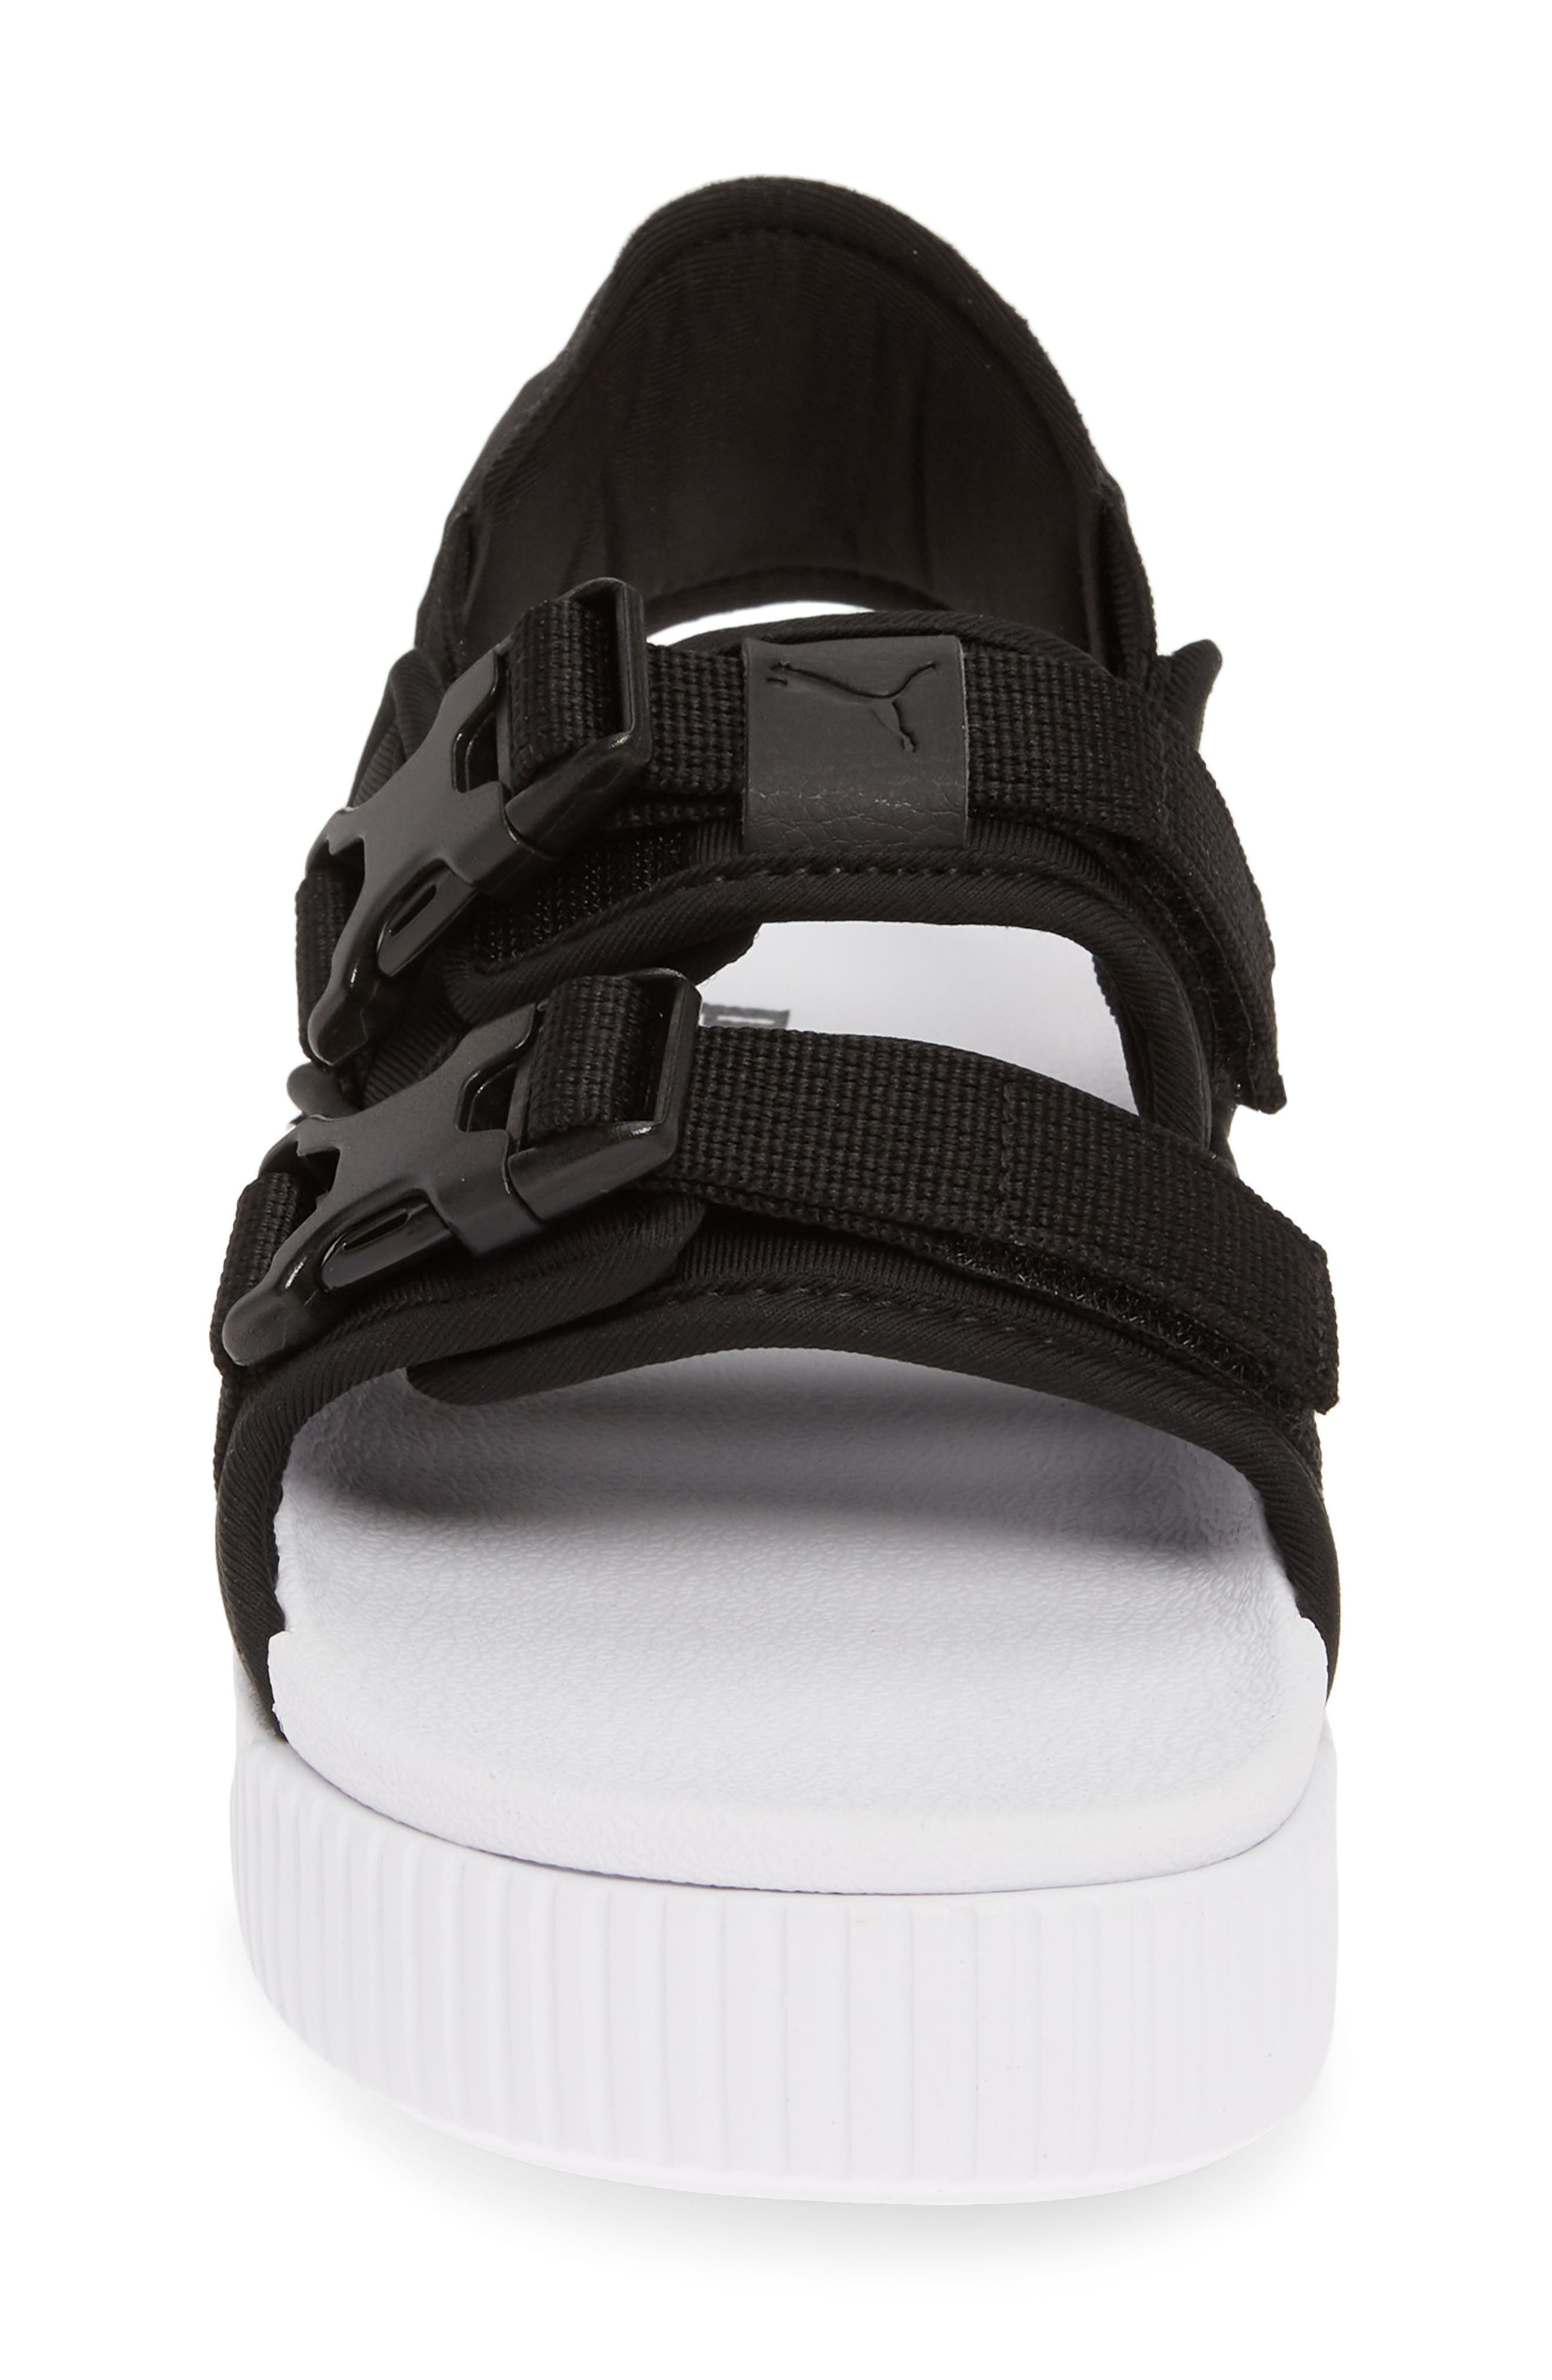 PUMA, Platform Slide YLM 19 Sandal, Alternate thumbnail 4, color, BLACK/ WHITE